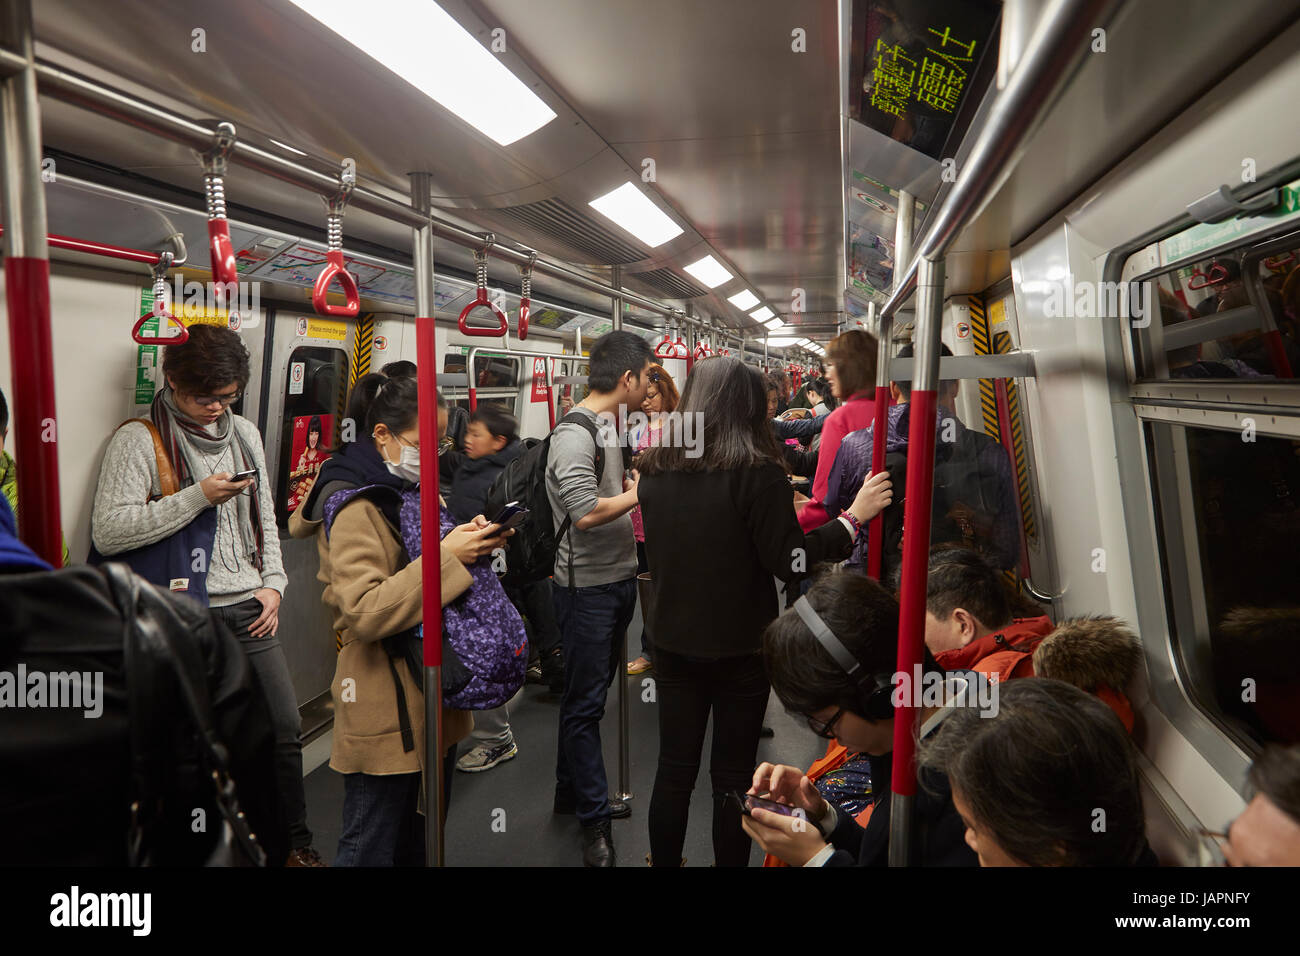 Passengers on their smartphones on MTR underground train system, Hong Kong, China - Stock Image